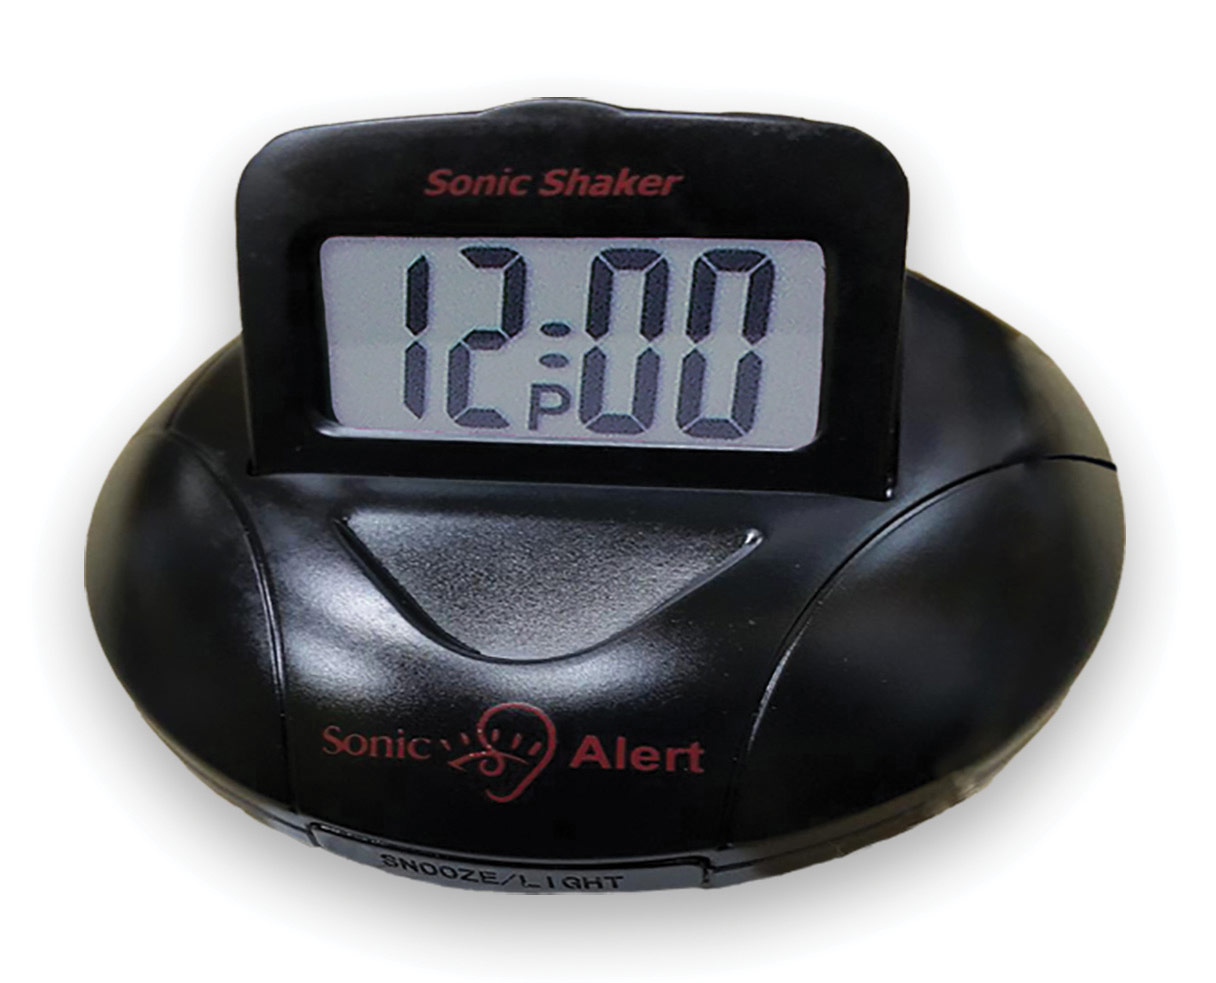 Sonic Alert Sonic Shaker Black Travel Alarm Clock SBP100C - click to view larger image